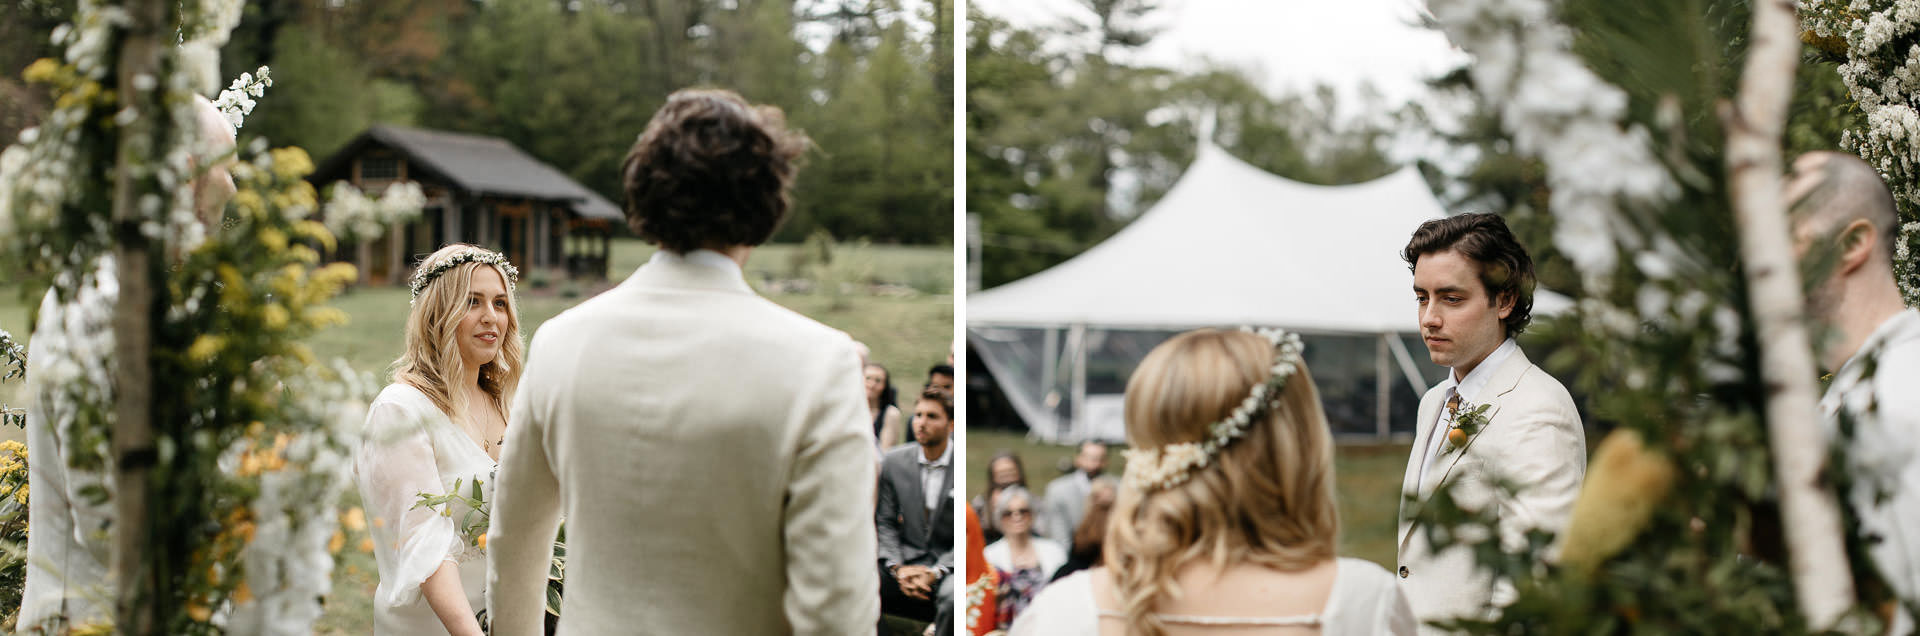 Boho Catskills Wedding at Foxfire Mountain House, NY by Jean-Laurent Gaudy Photography